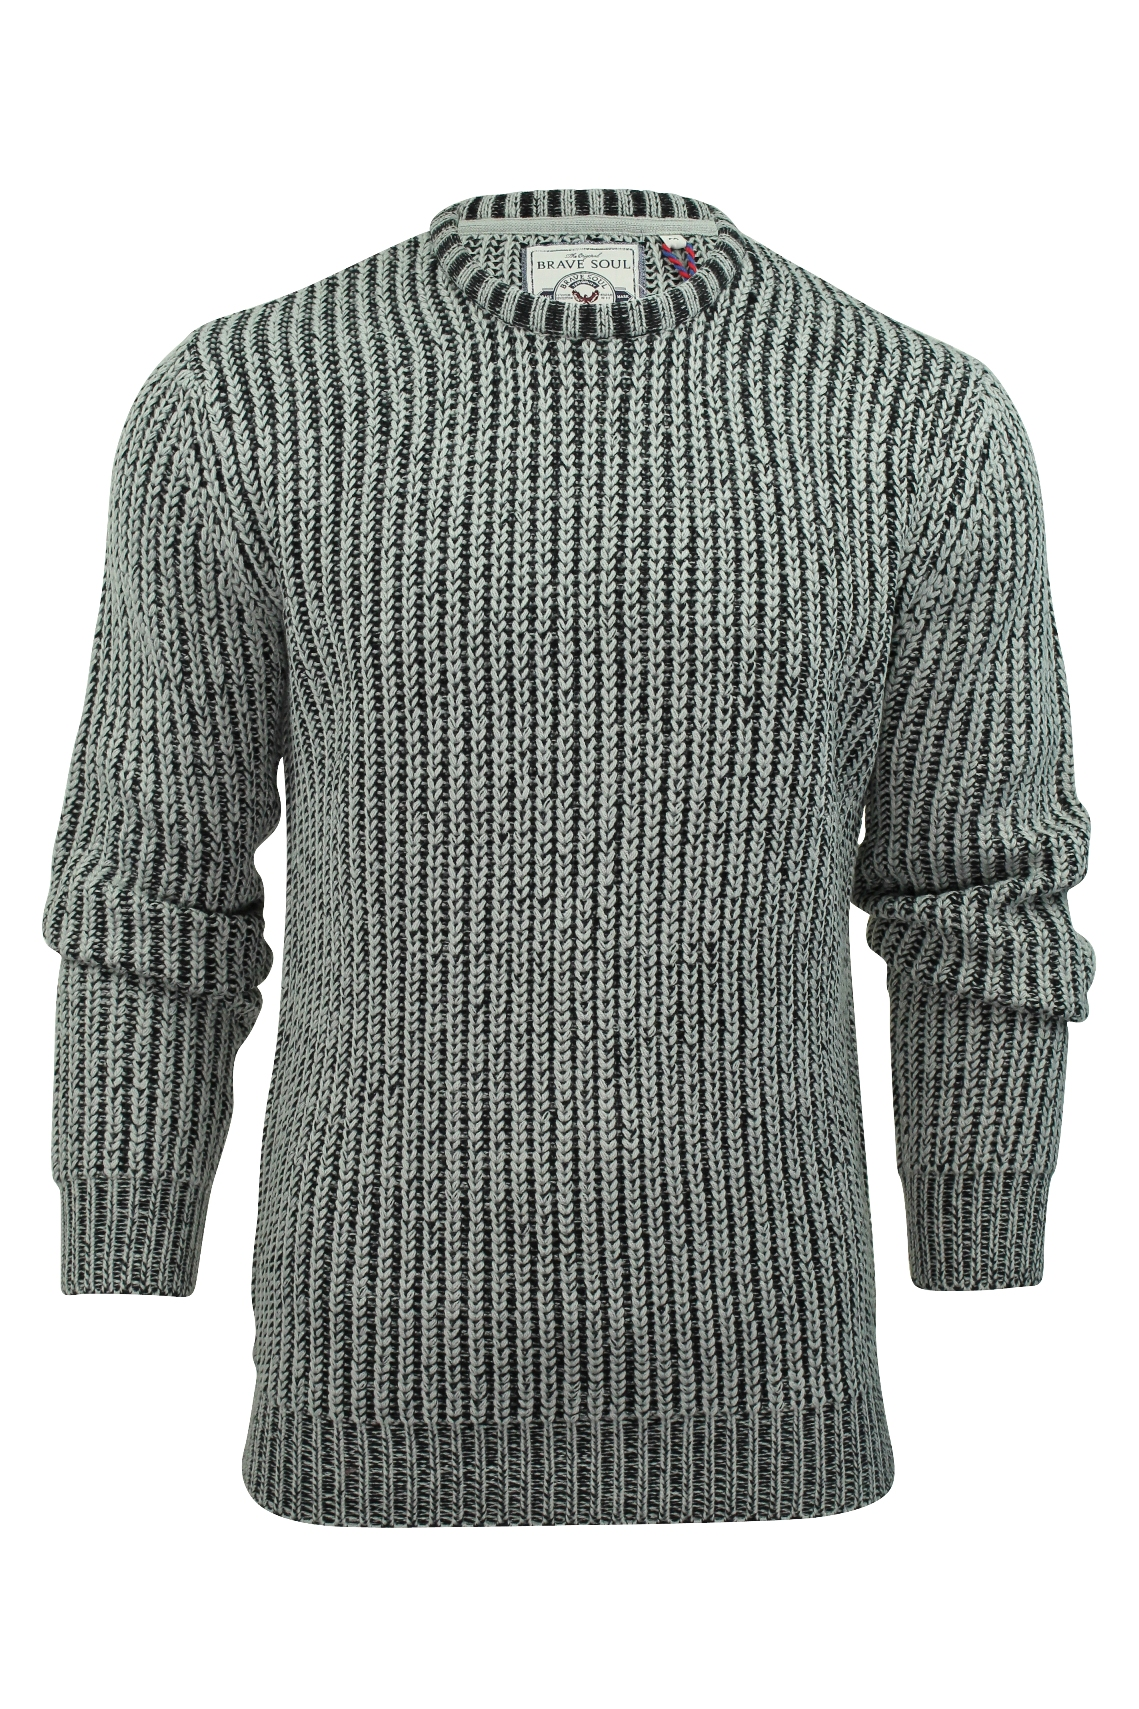 Mens Jumper Brave Soul  Dawkins  Knit Crew Neck Sweater   eBay d2f4d0f557